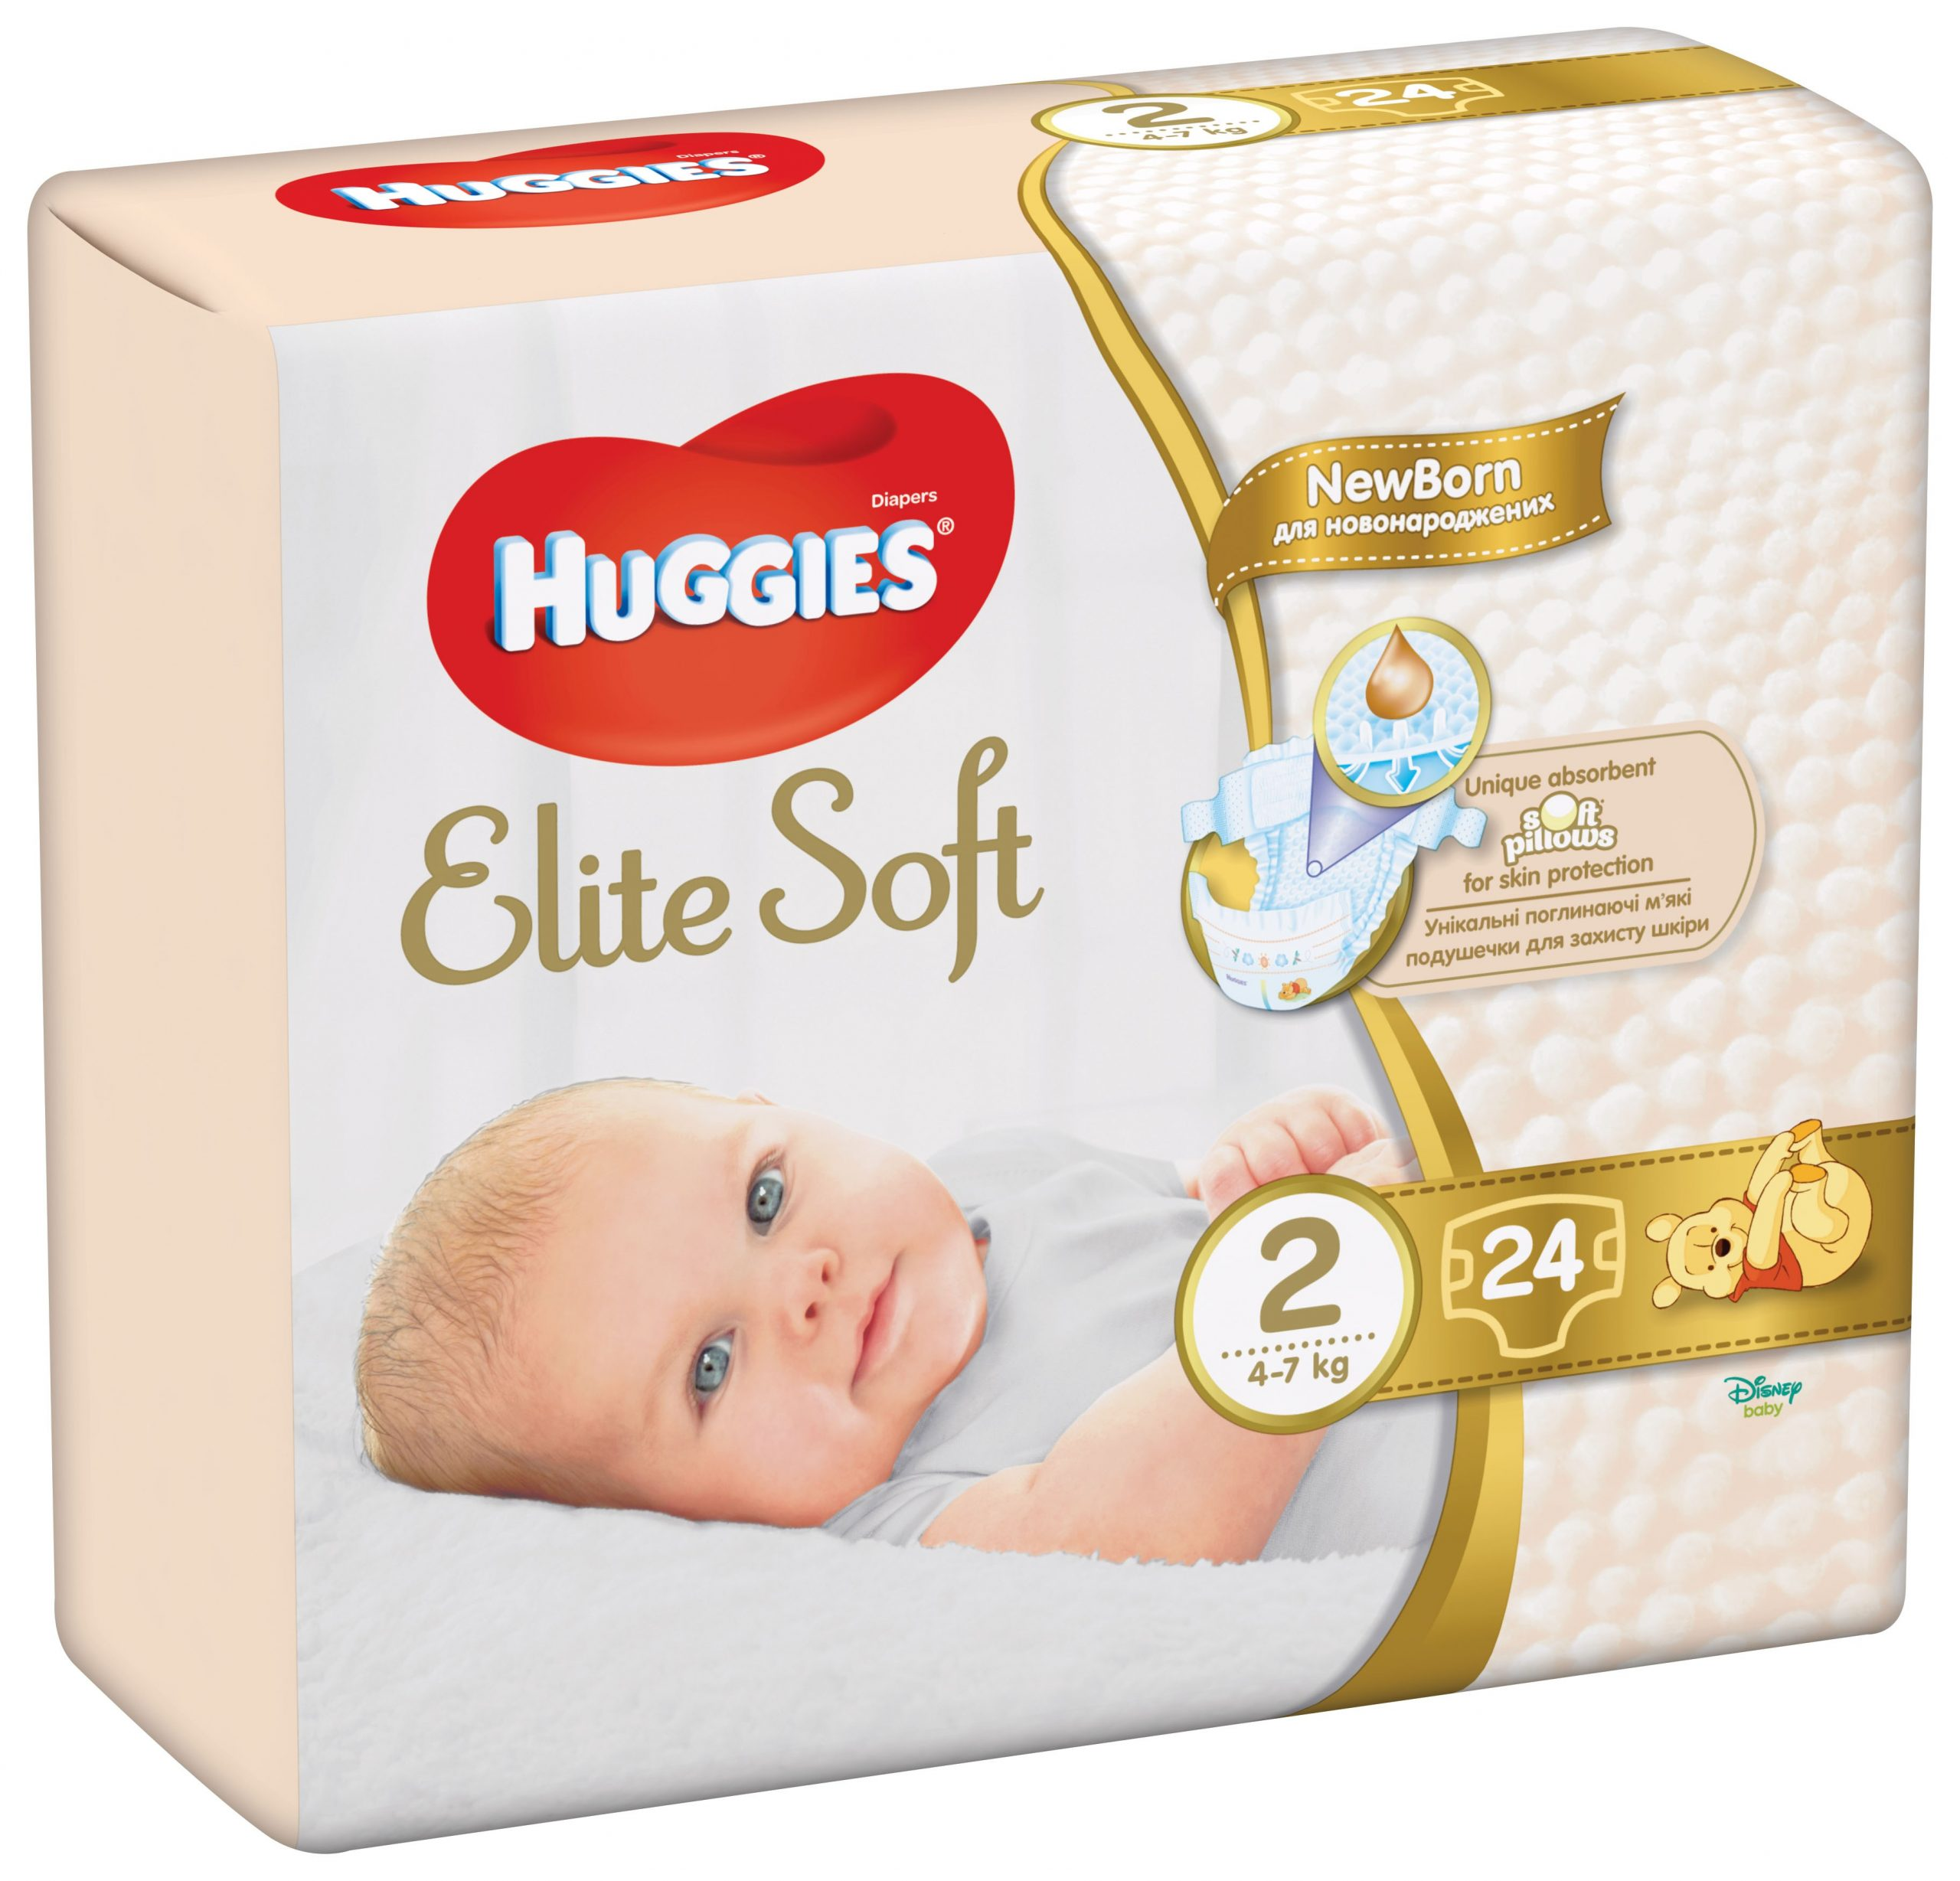 HUGGIES ELITE SOFT (2) 24 - (4-7kg)